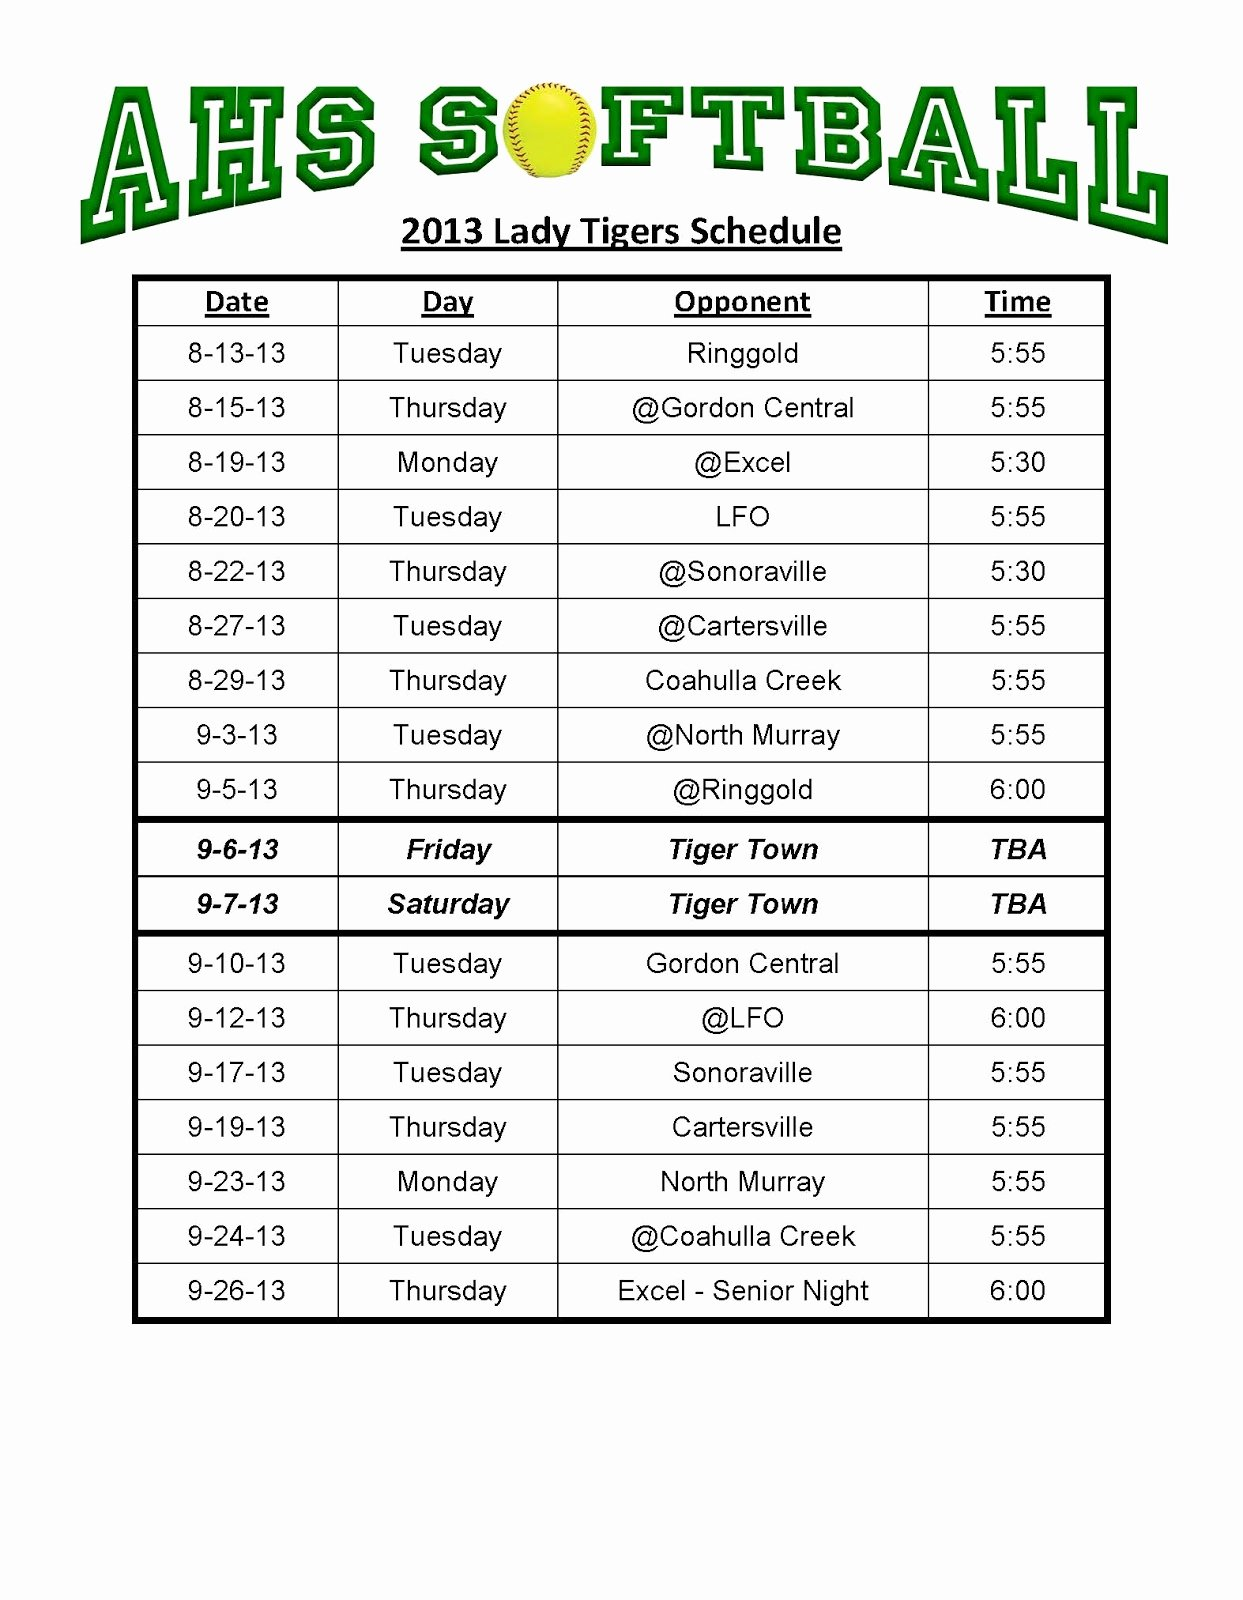 Concession Stand Schedule Template Inspirational Ahs softball